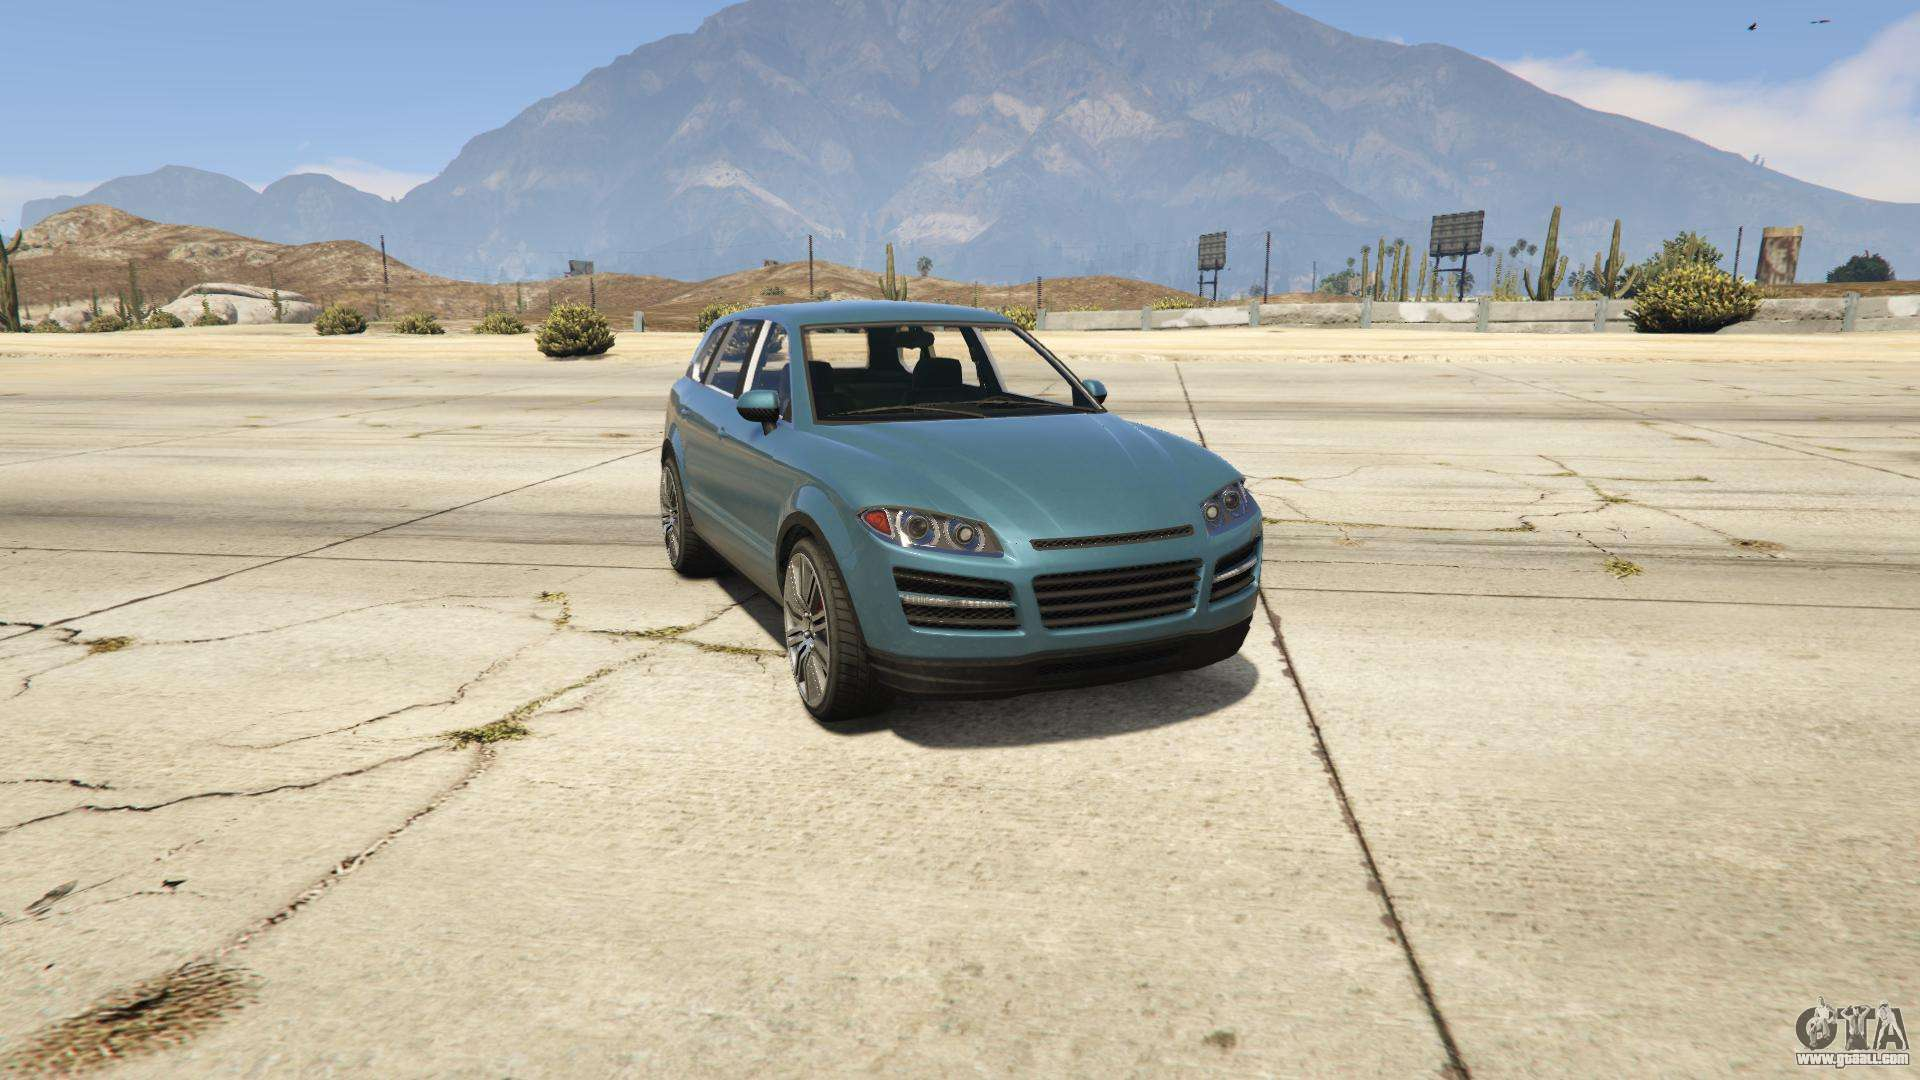 GTA 5 Obey Rocoto - front view